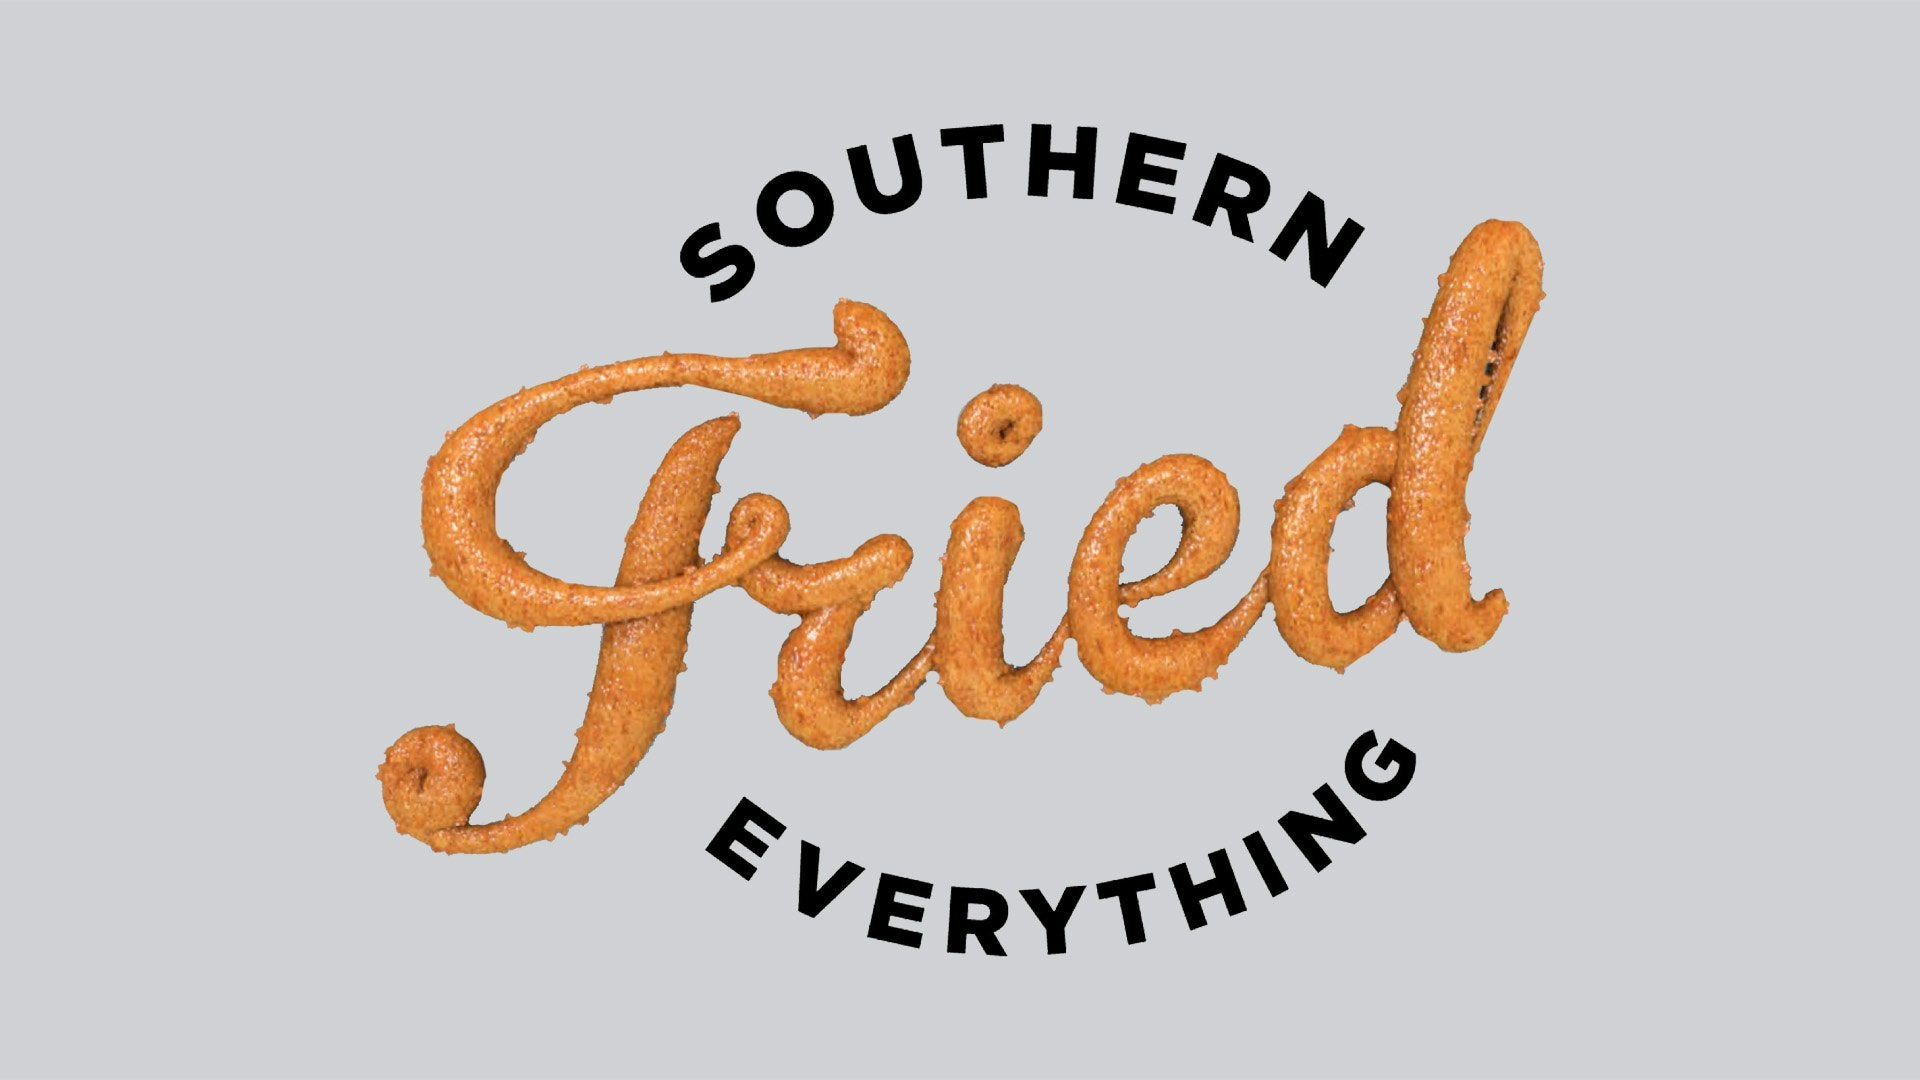 Southern Fried Everything